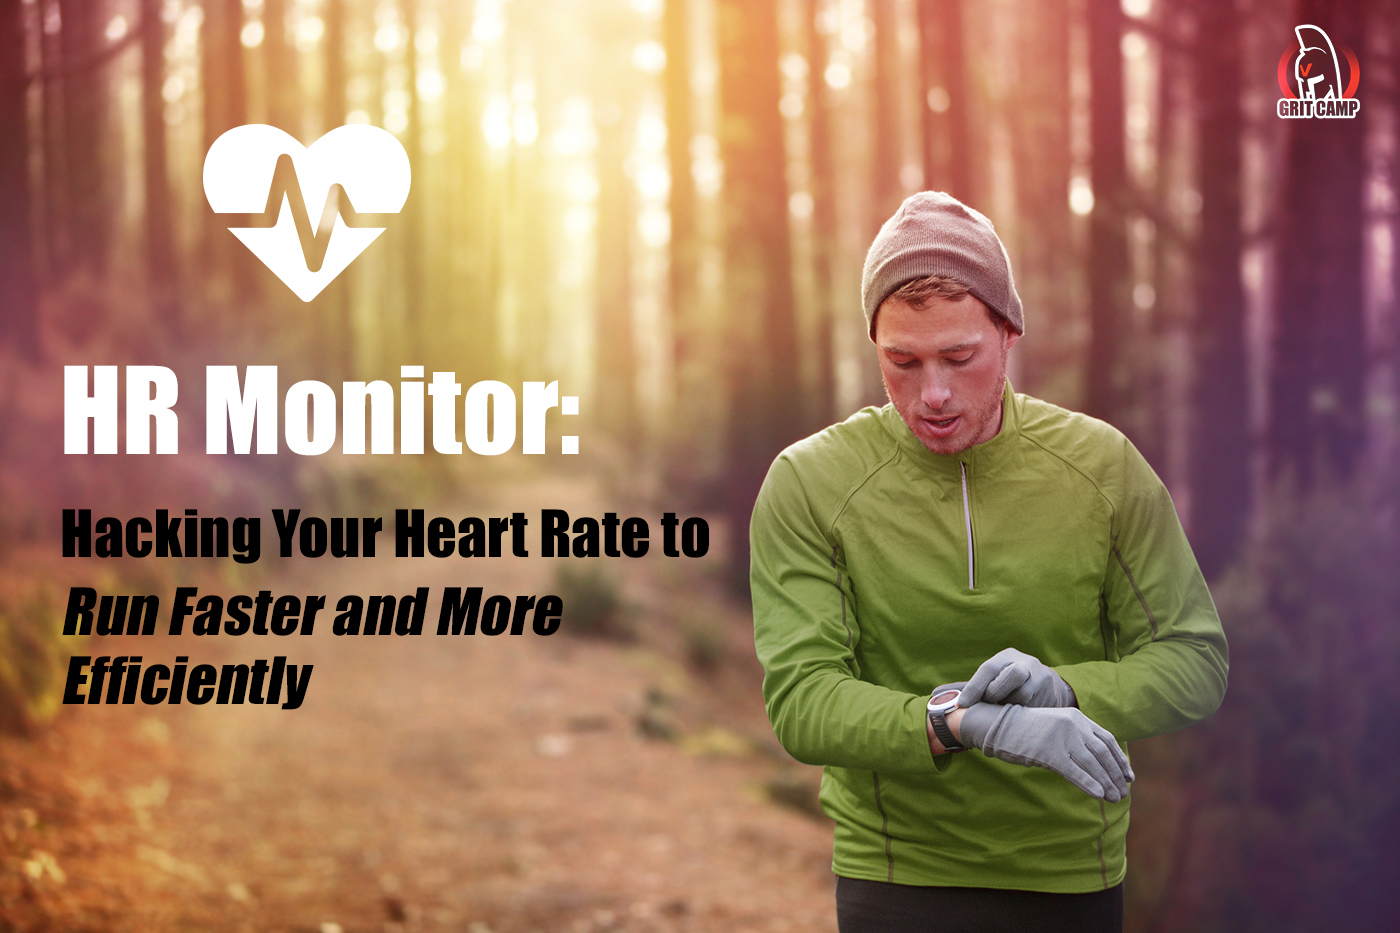 HR Monitor: Hacking Your Heart Rate to Run Faster and More Efficiently